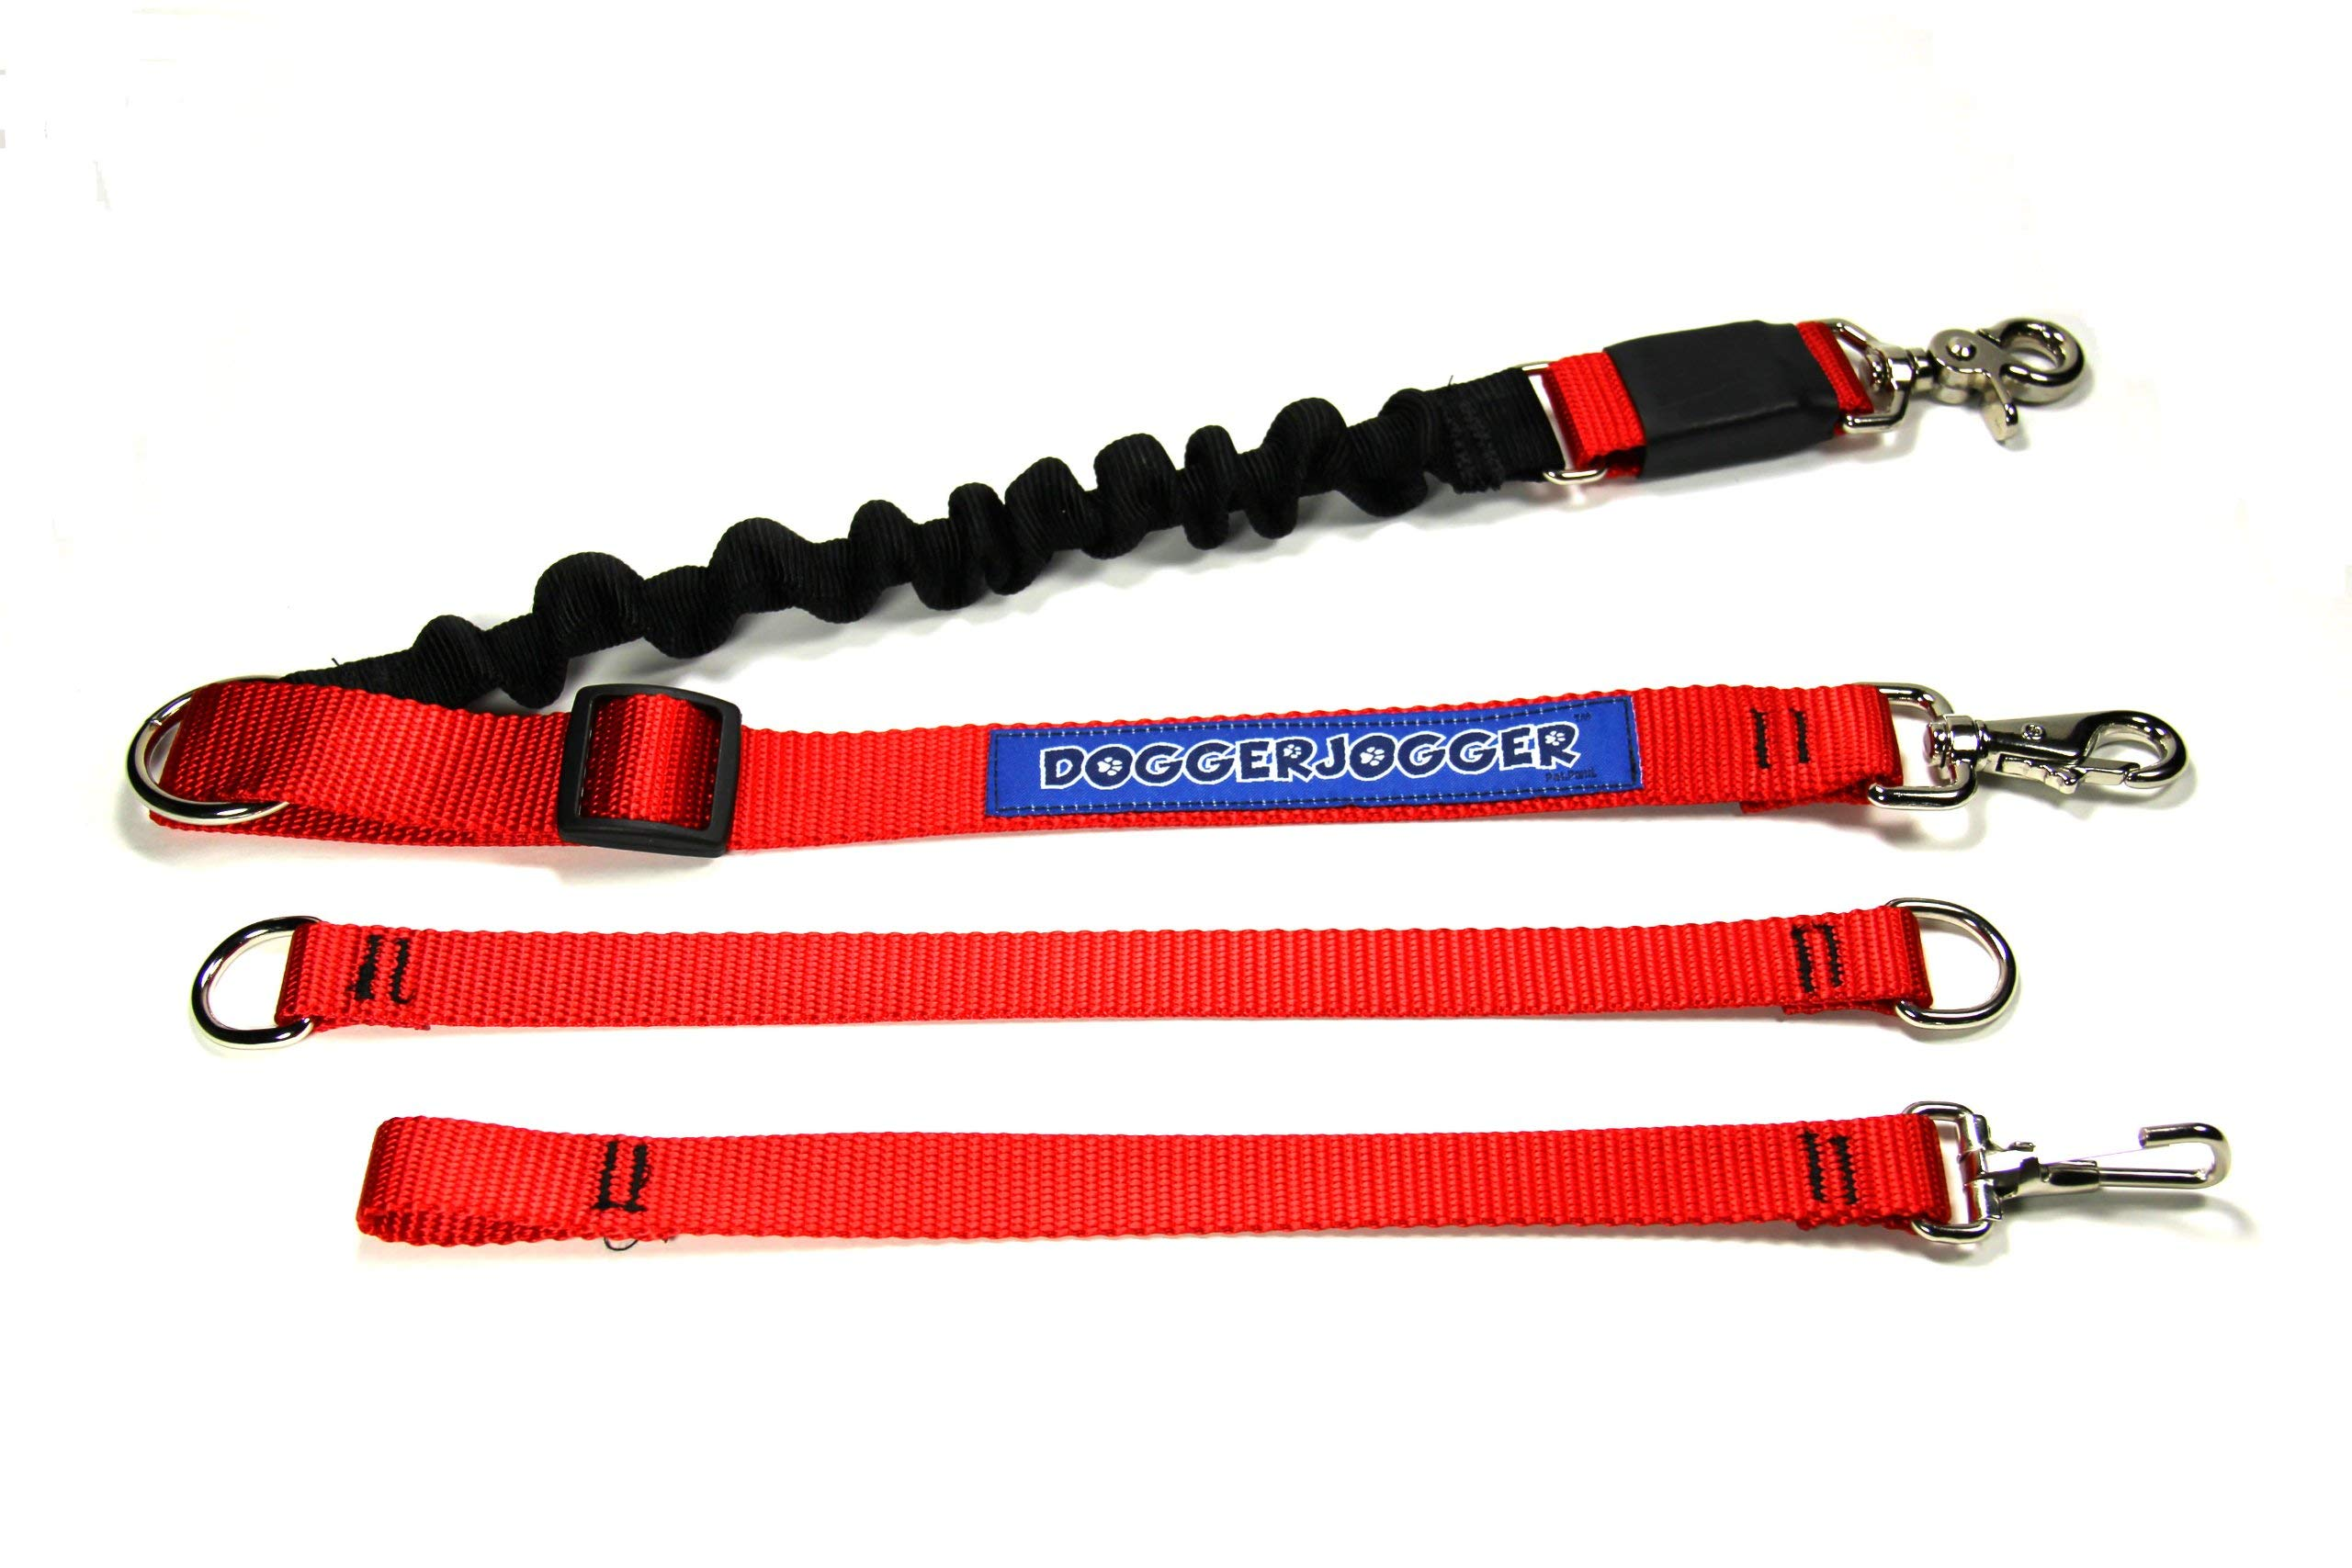 DoggerJogger Bike Dog Leash (Red) by DOGGERJOGGER